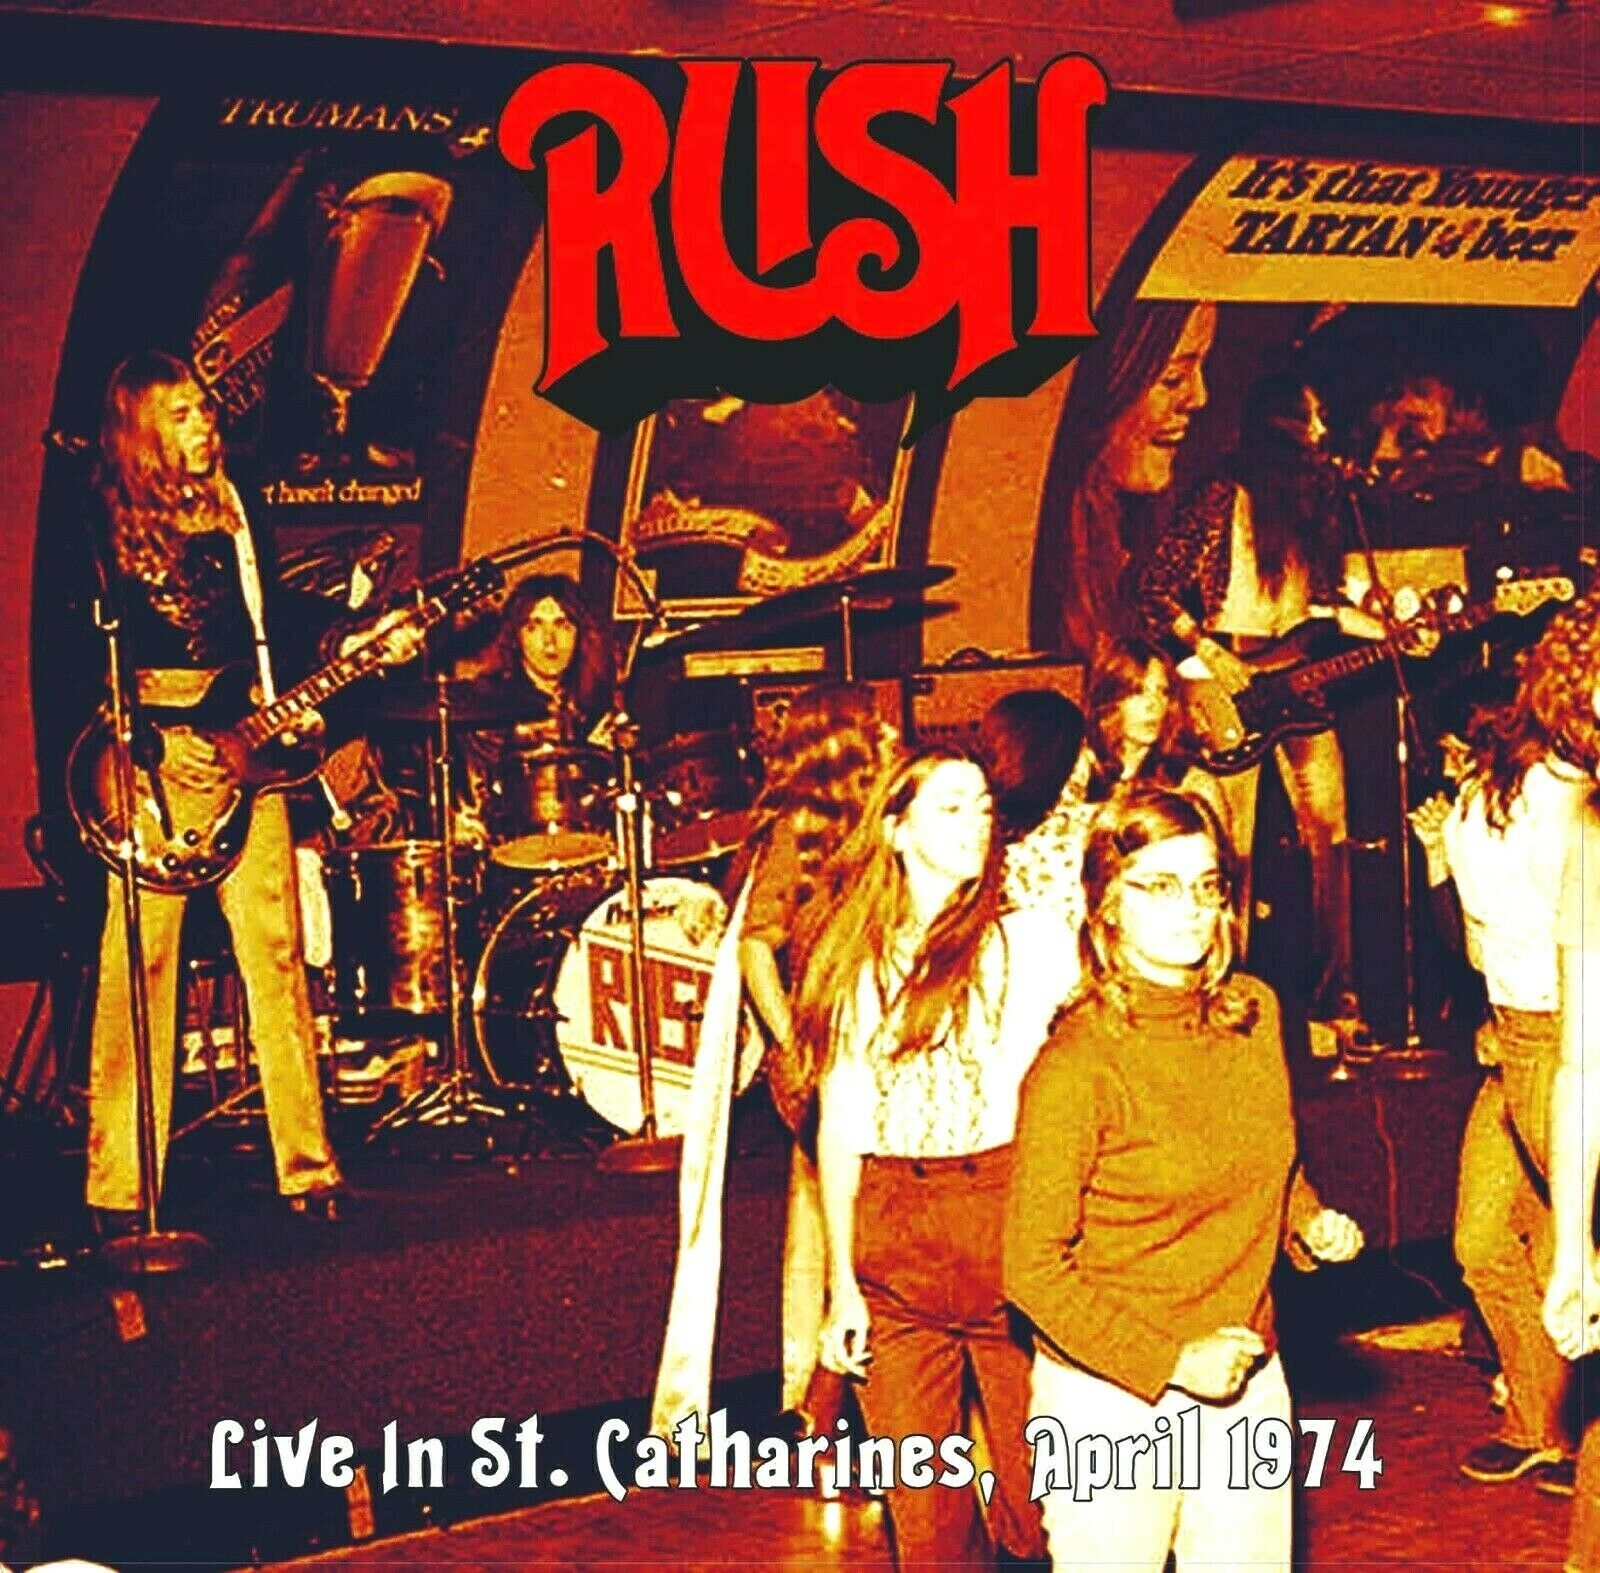 Live At St. Catharines April 1974 (Vinyl)